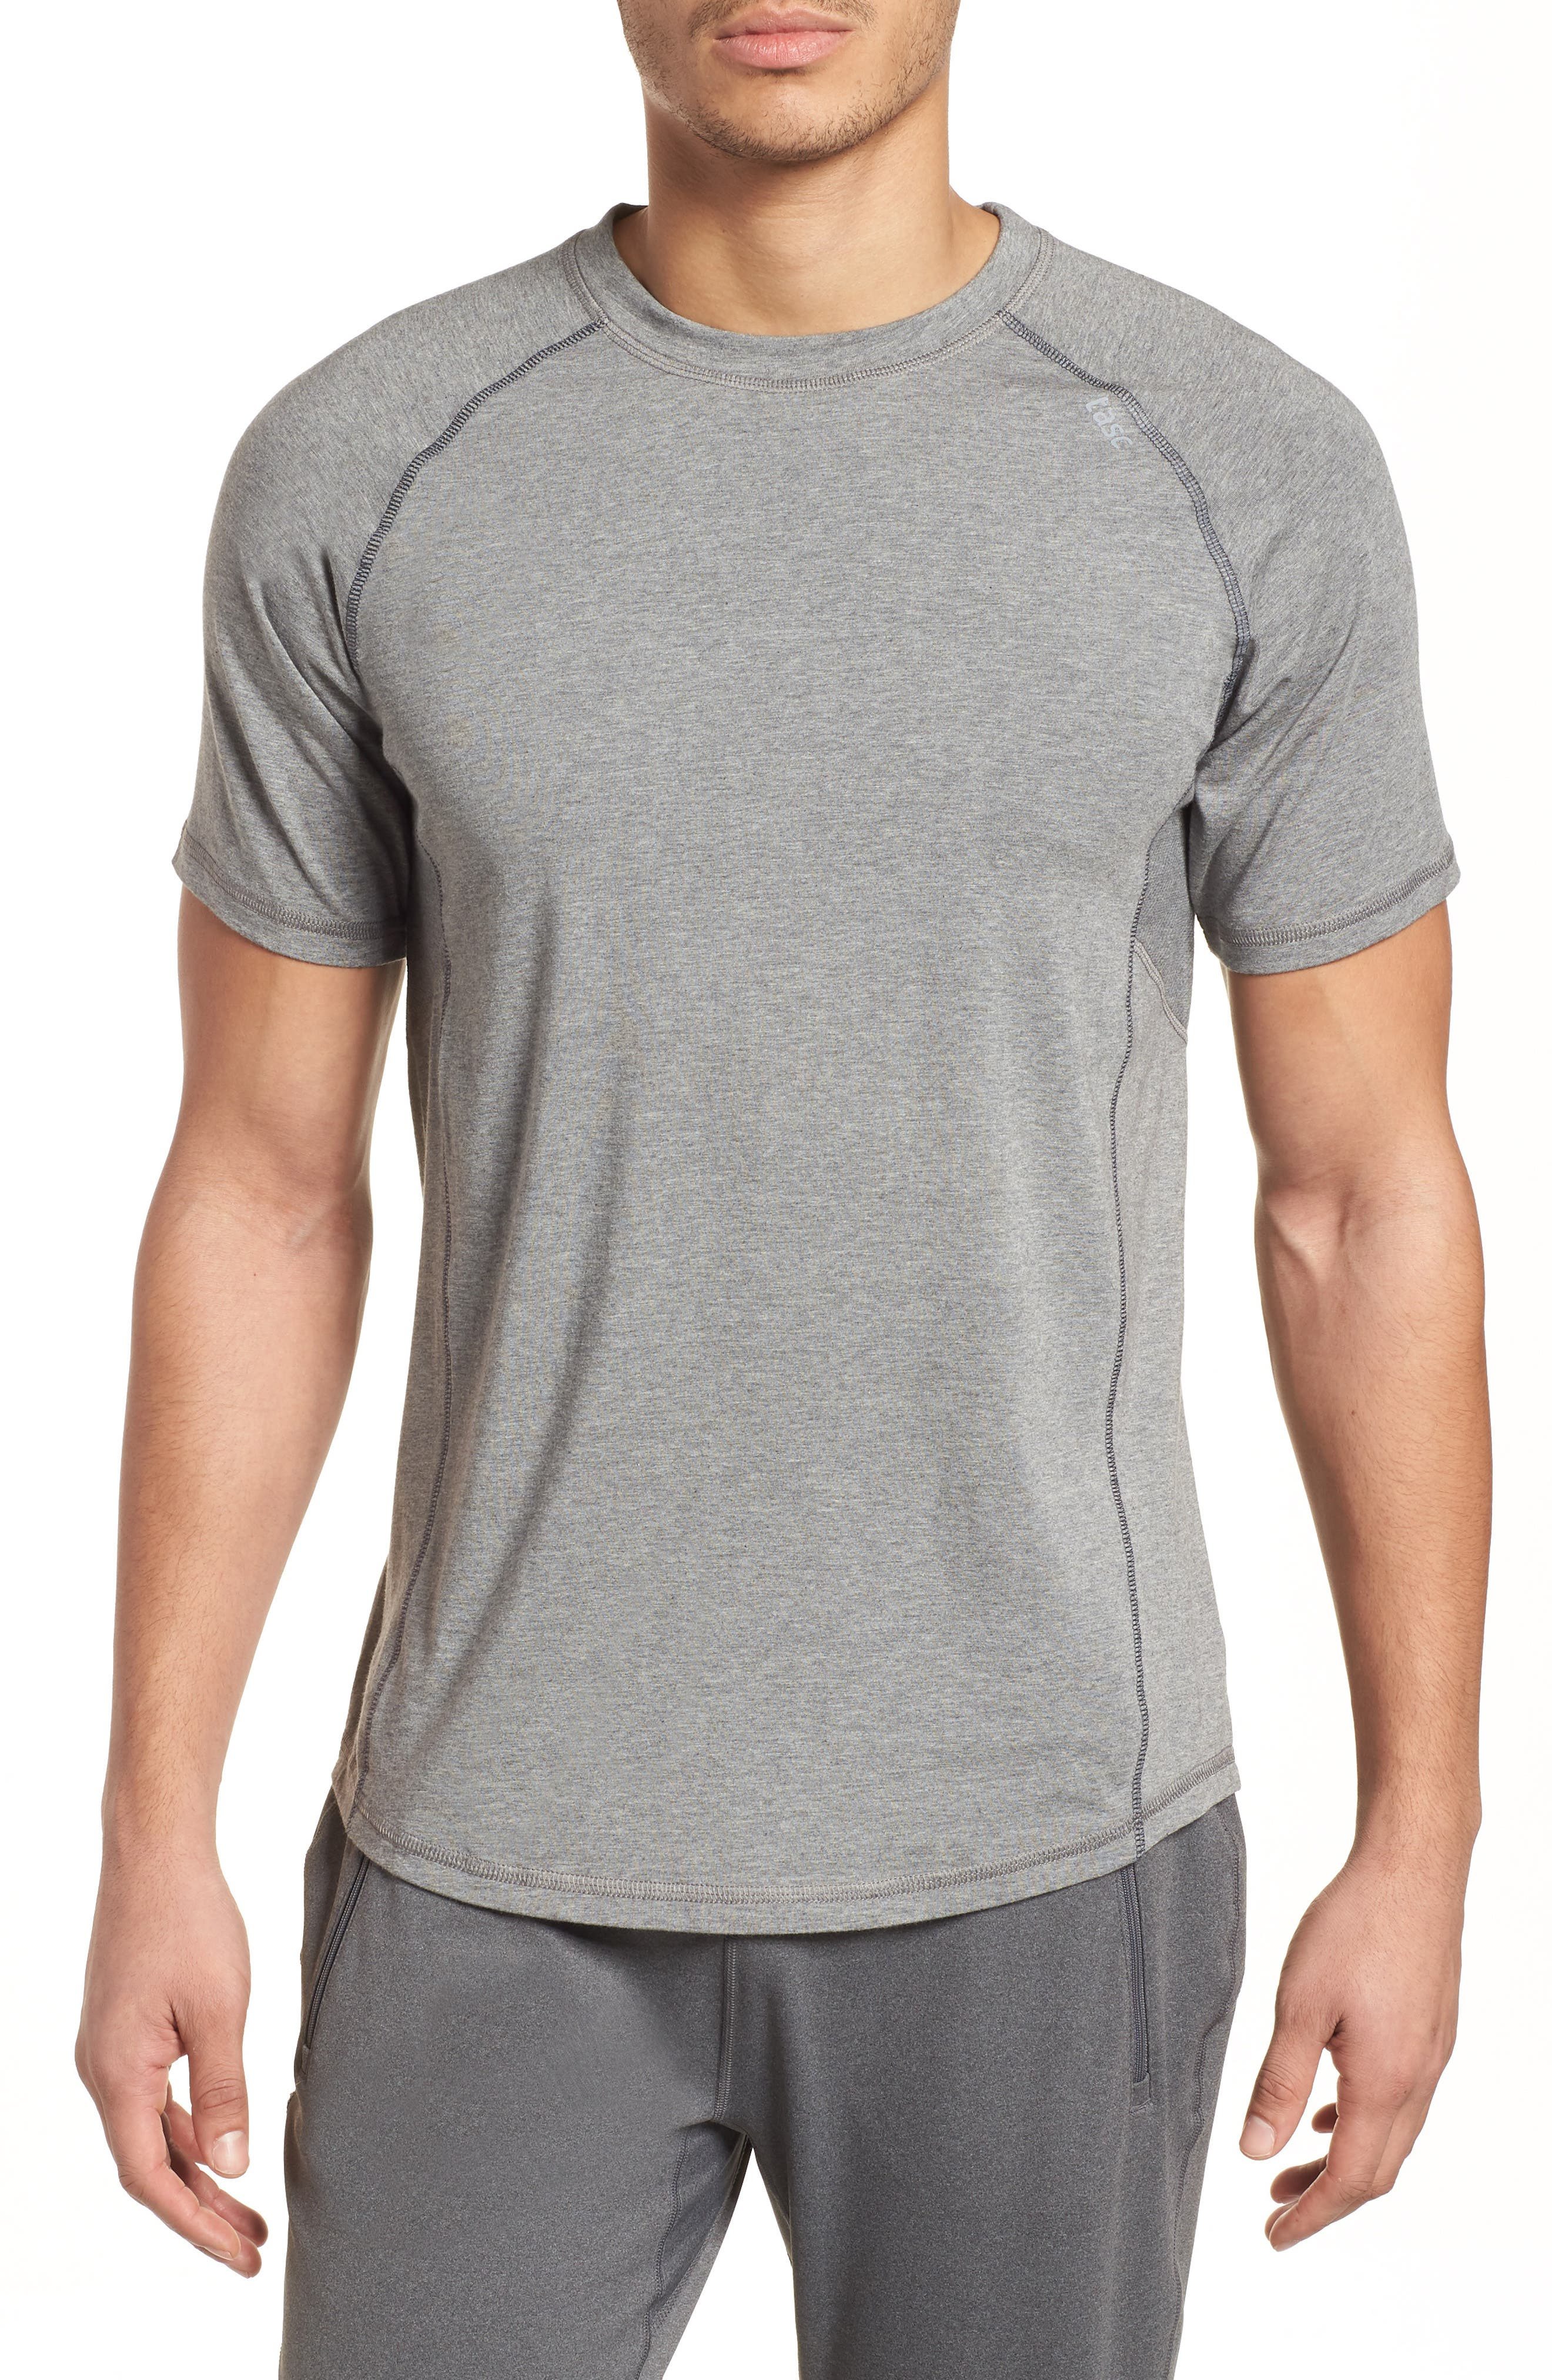 Charge II T-Shirt,                             Main thumbnail 1, color,                             HEATHER GREY